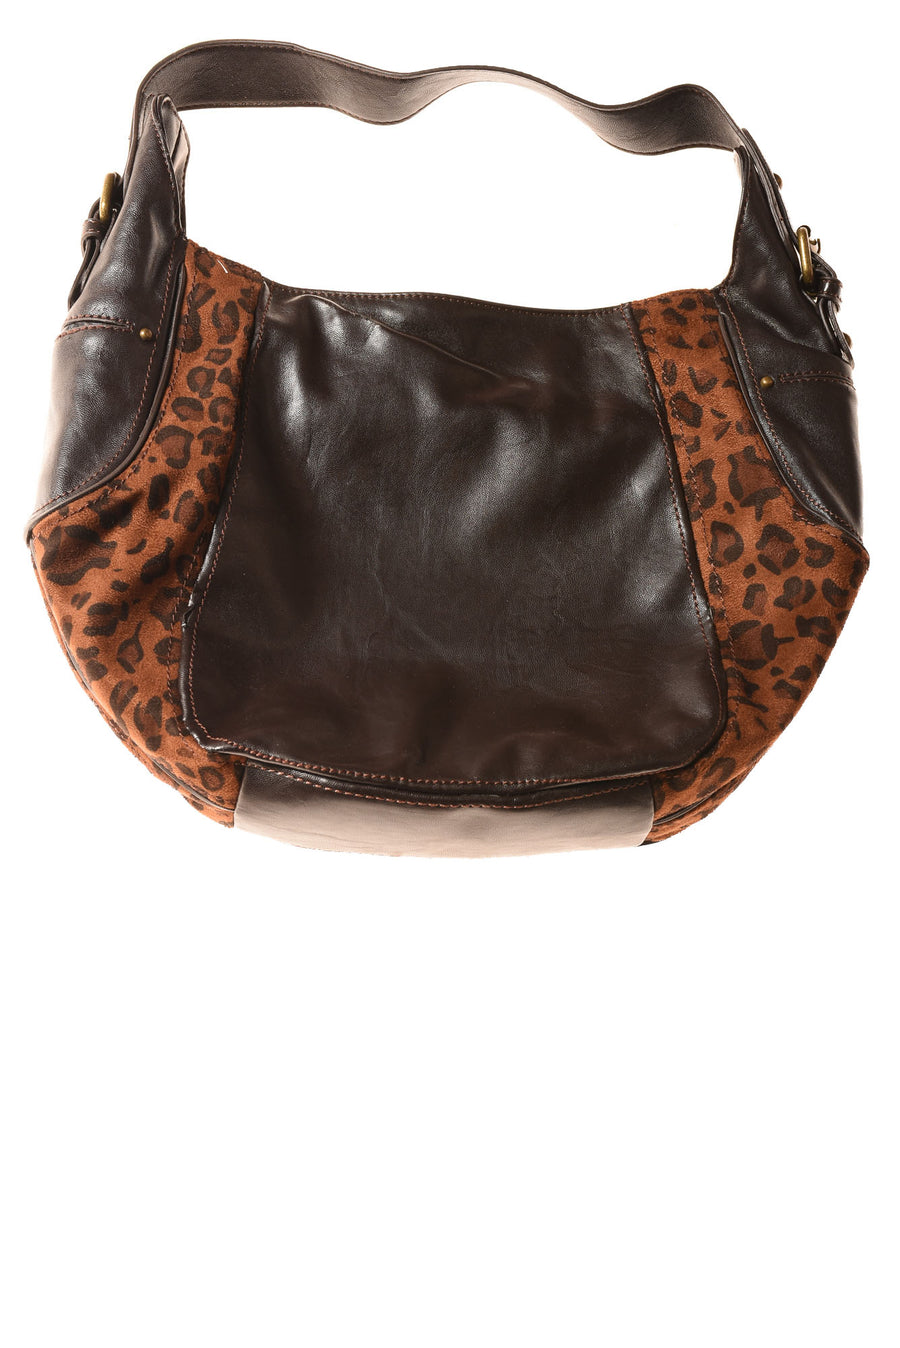 Women's Handbag By Nine West